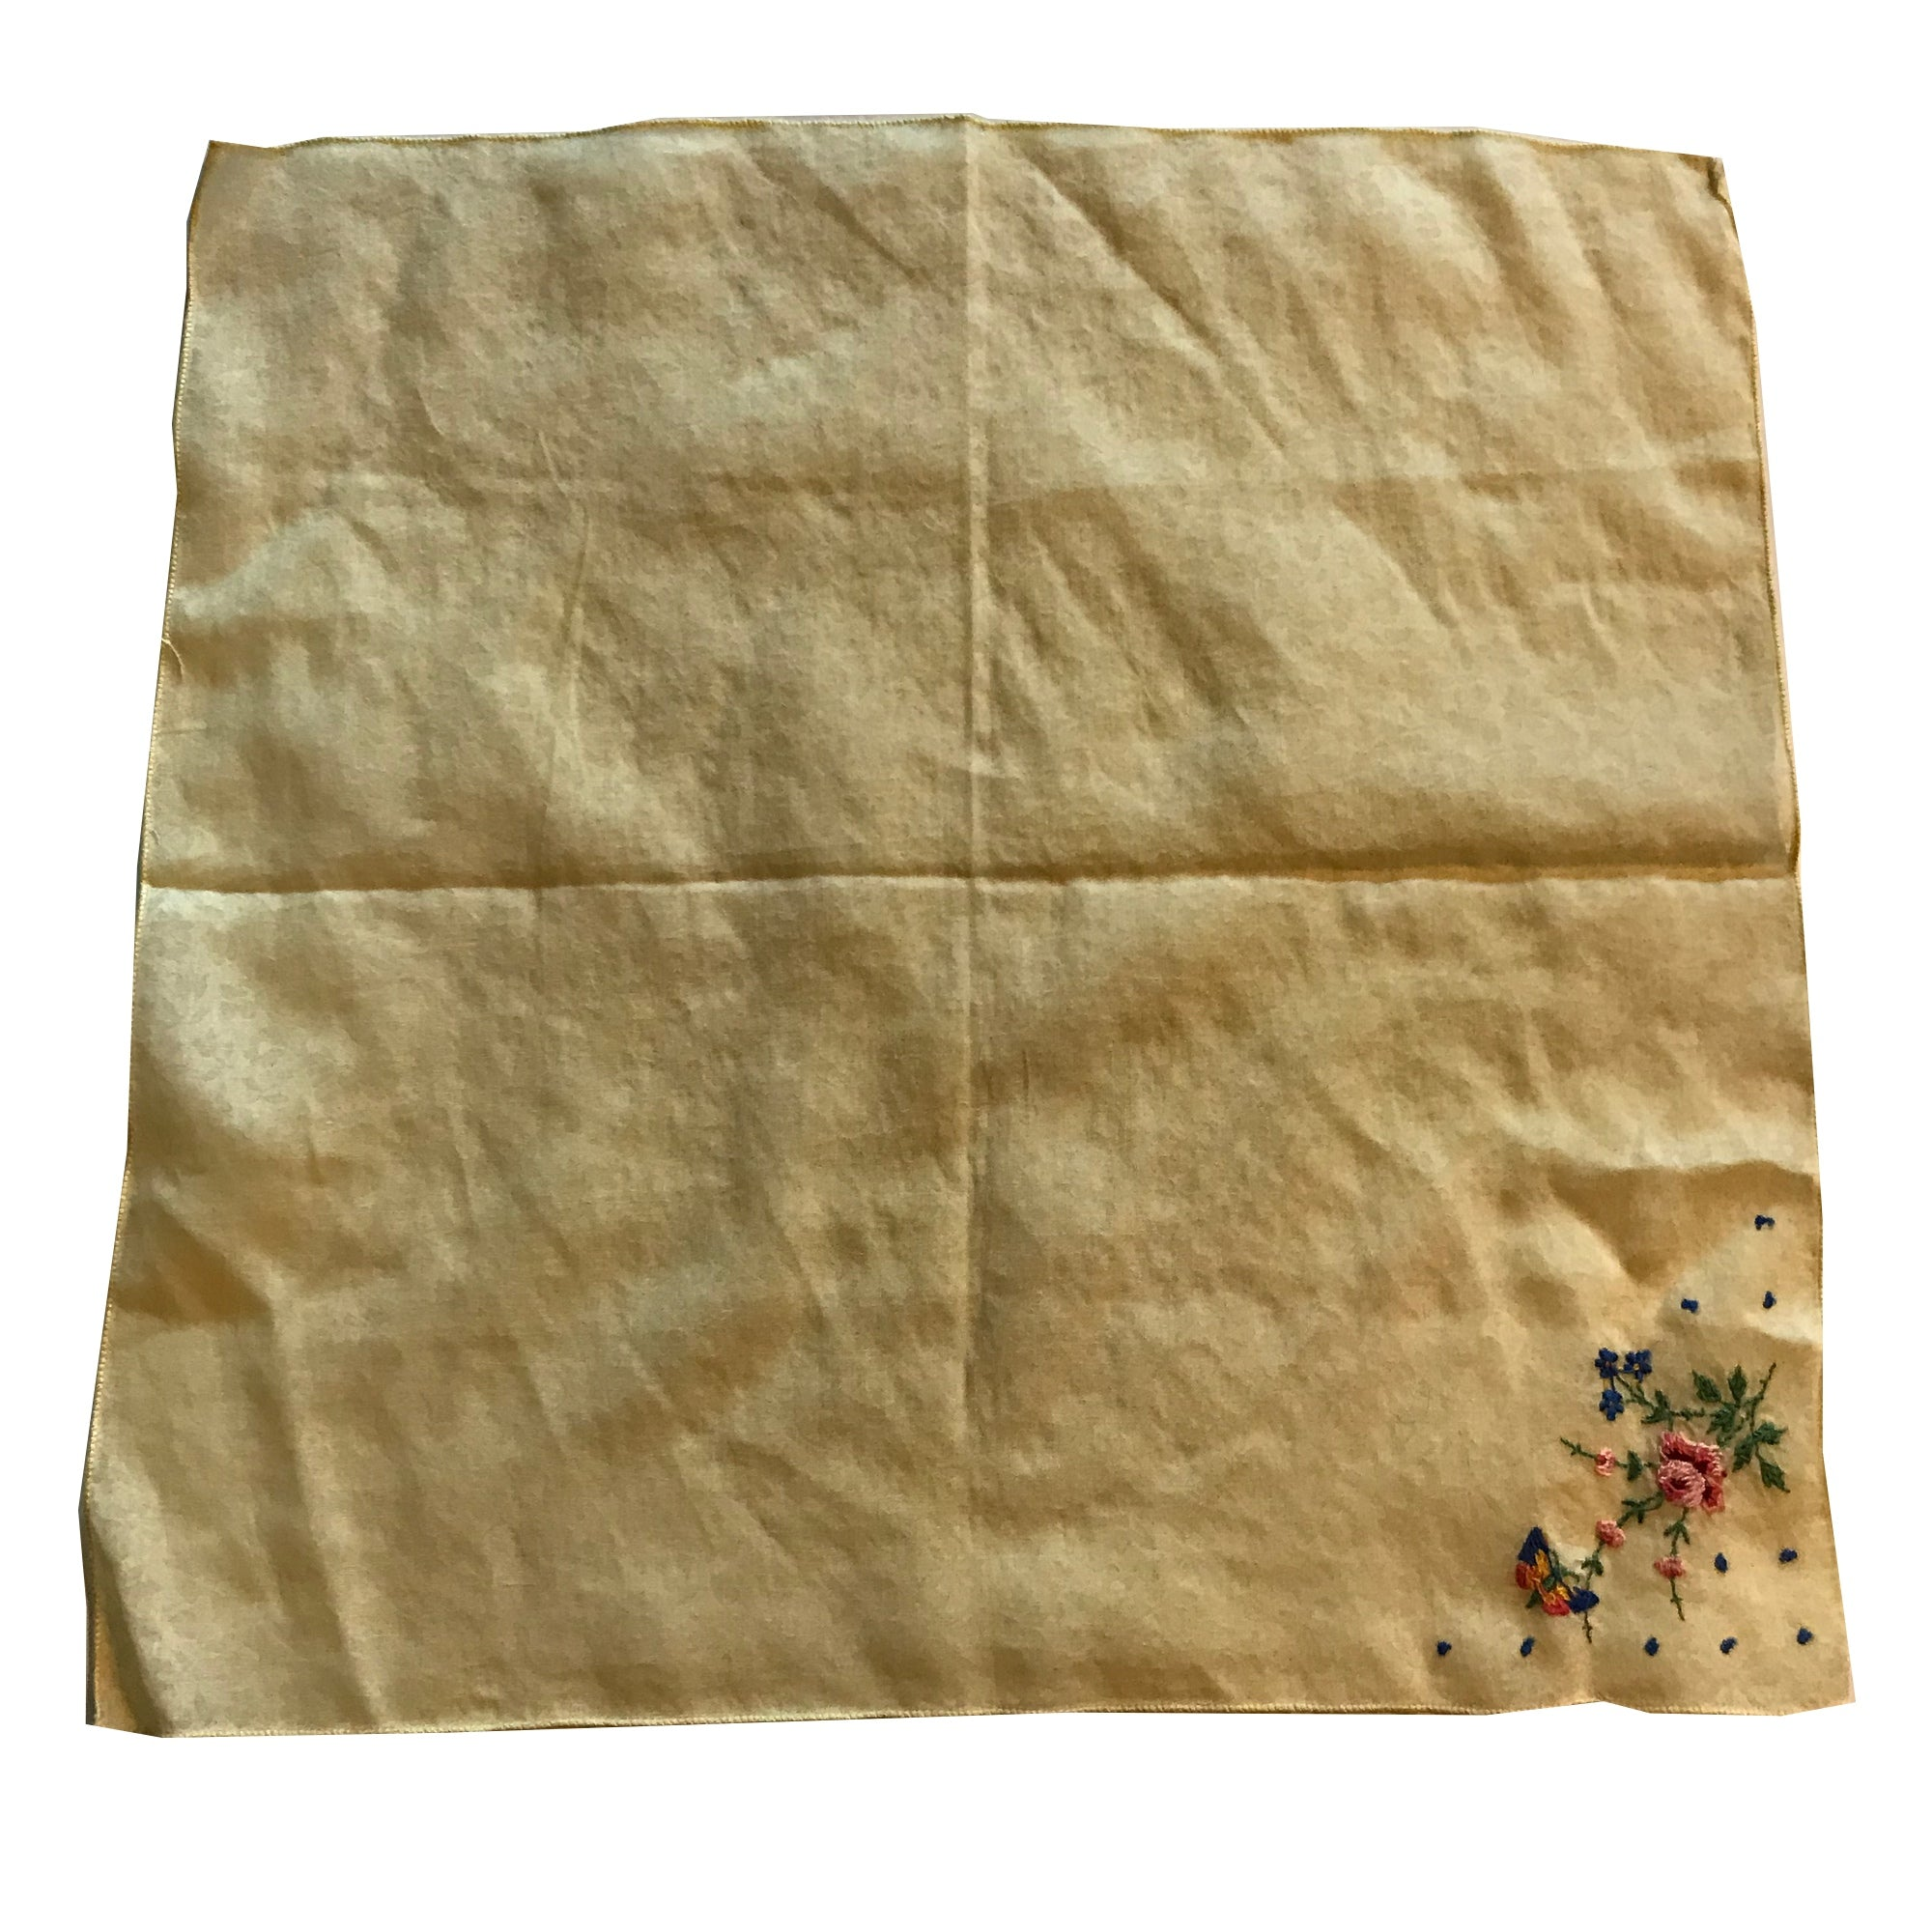 Yellow Floral Weave Handkerchief with Pastel Flower & Butterfly Embroidery circa 1950s